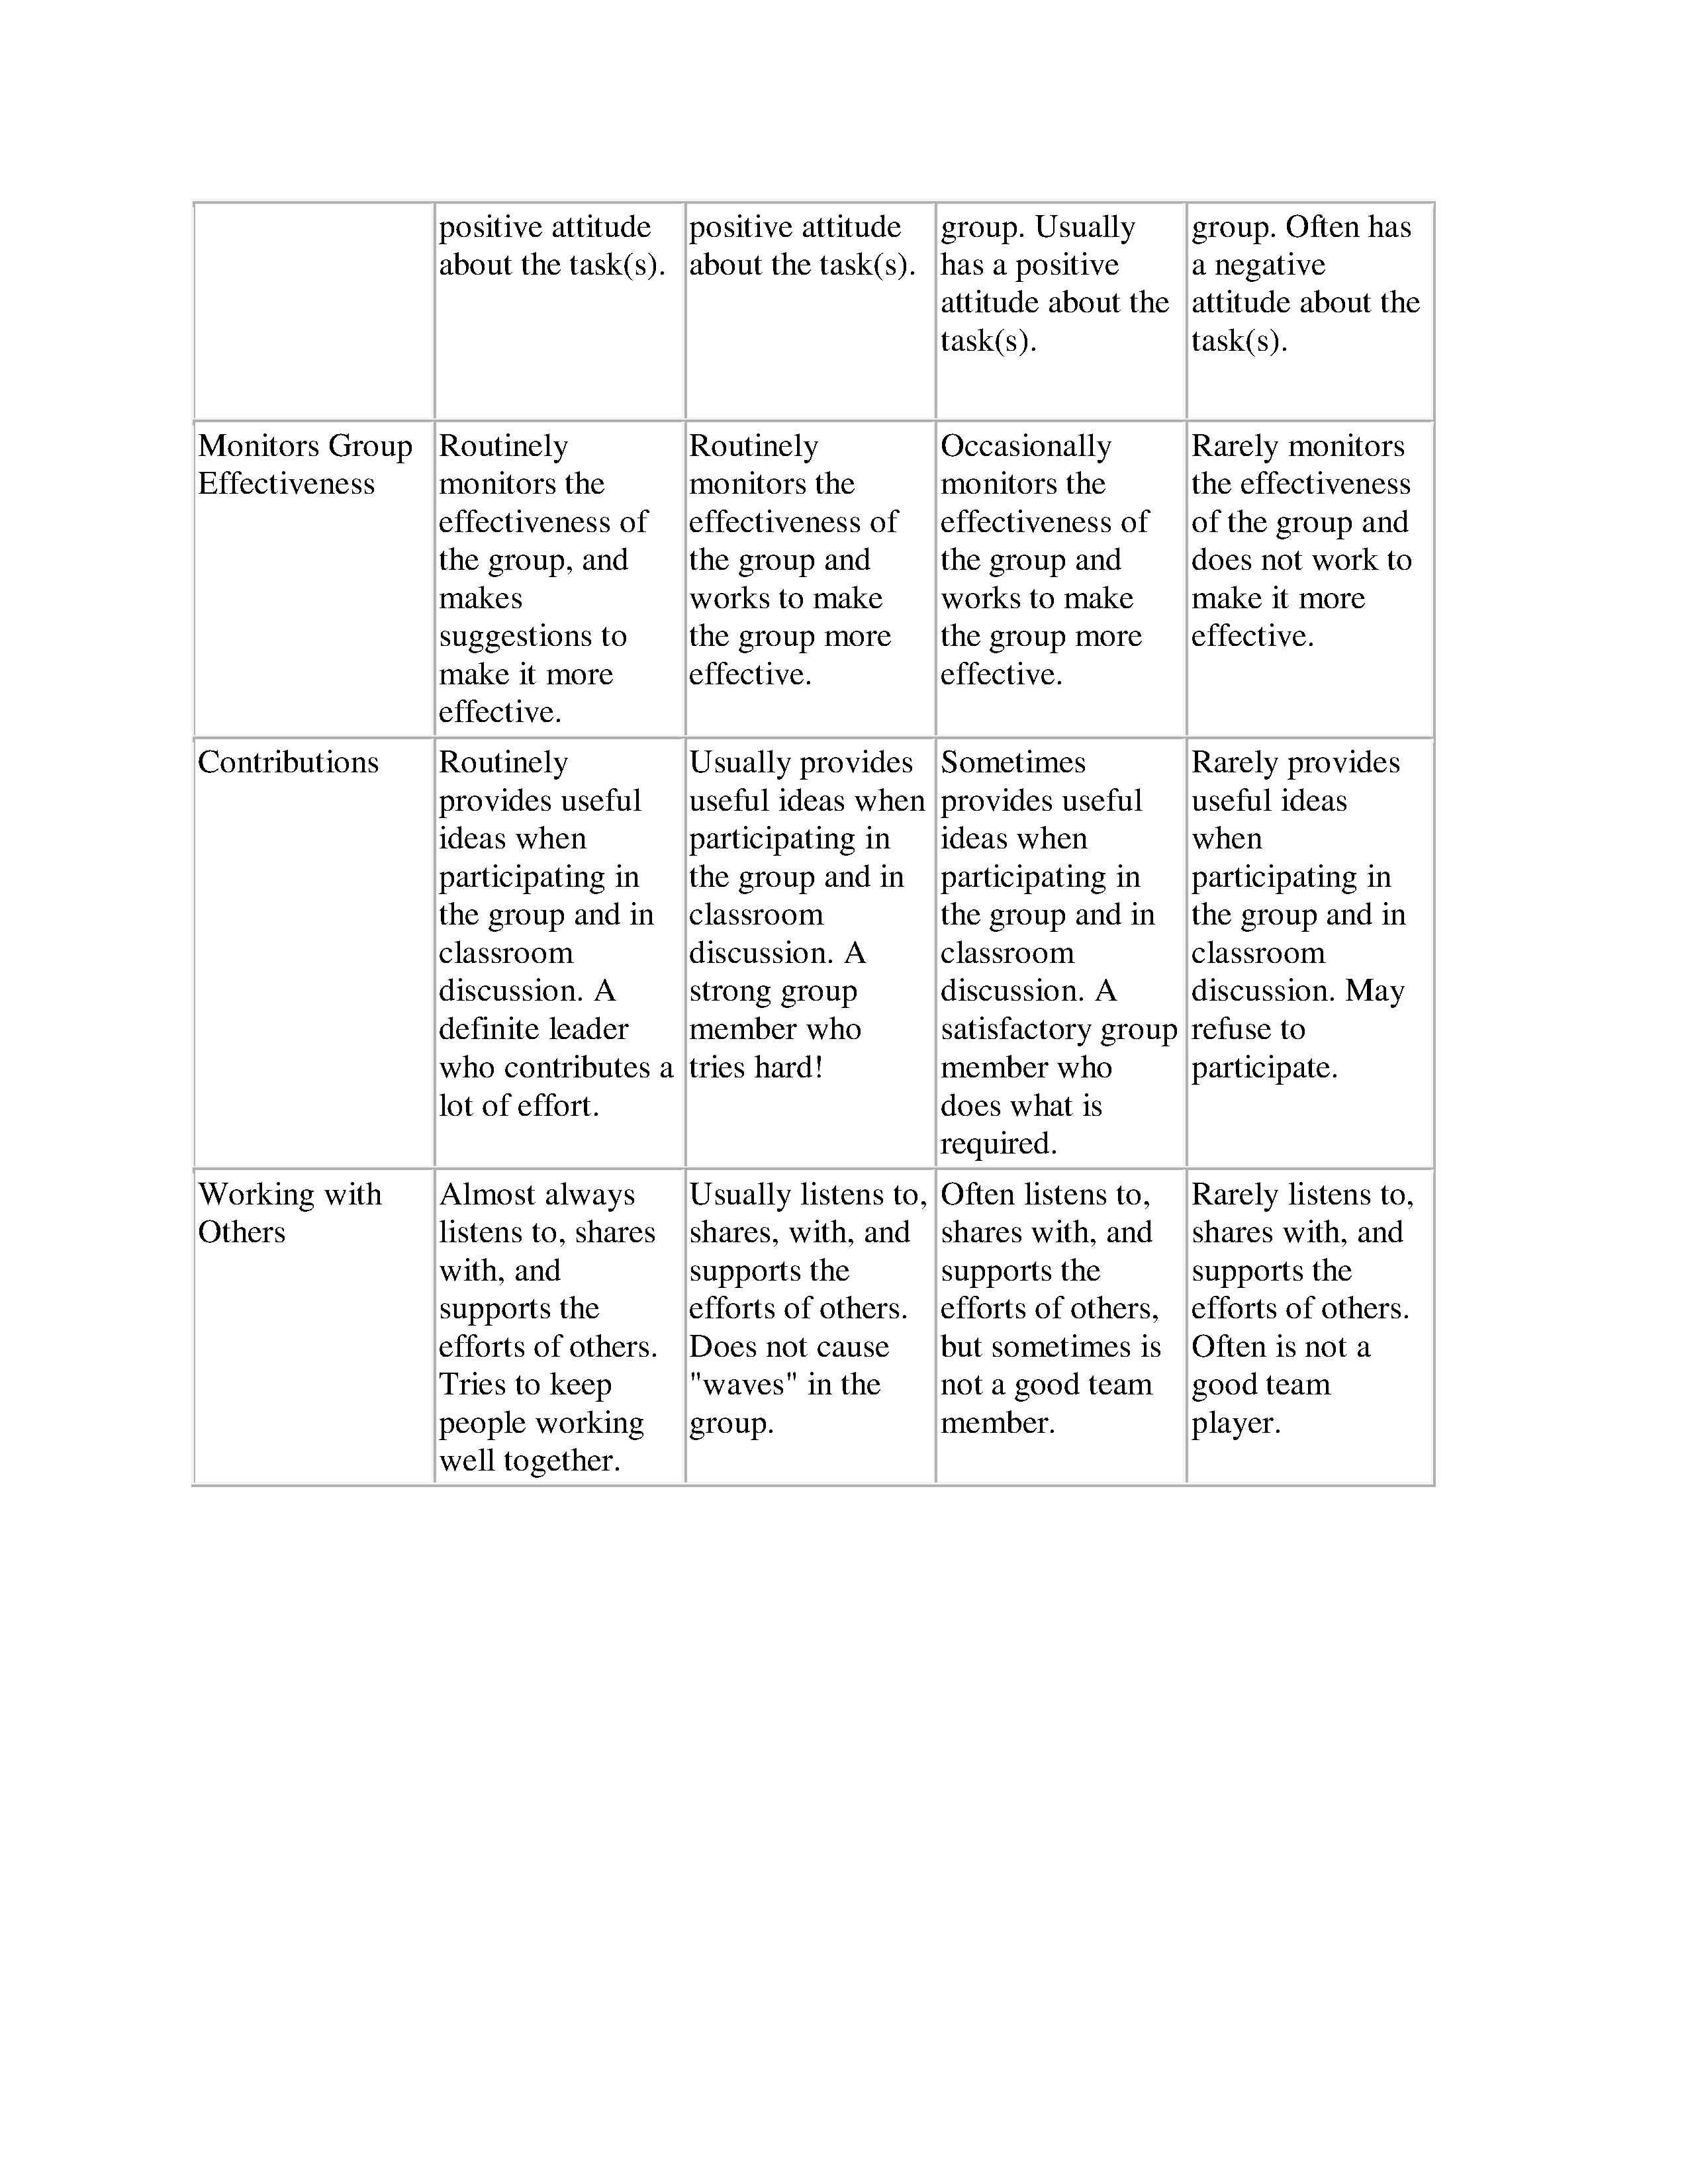 Group Presentations On Deviance And Conformity Rubric Page 2